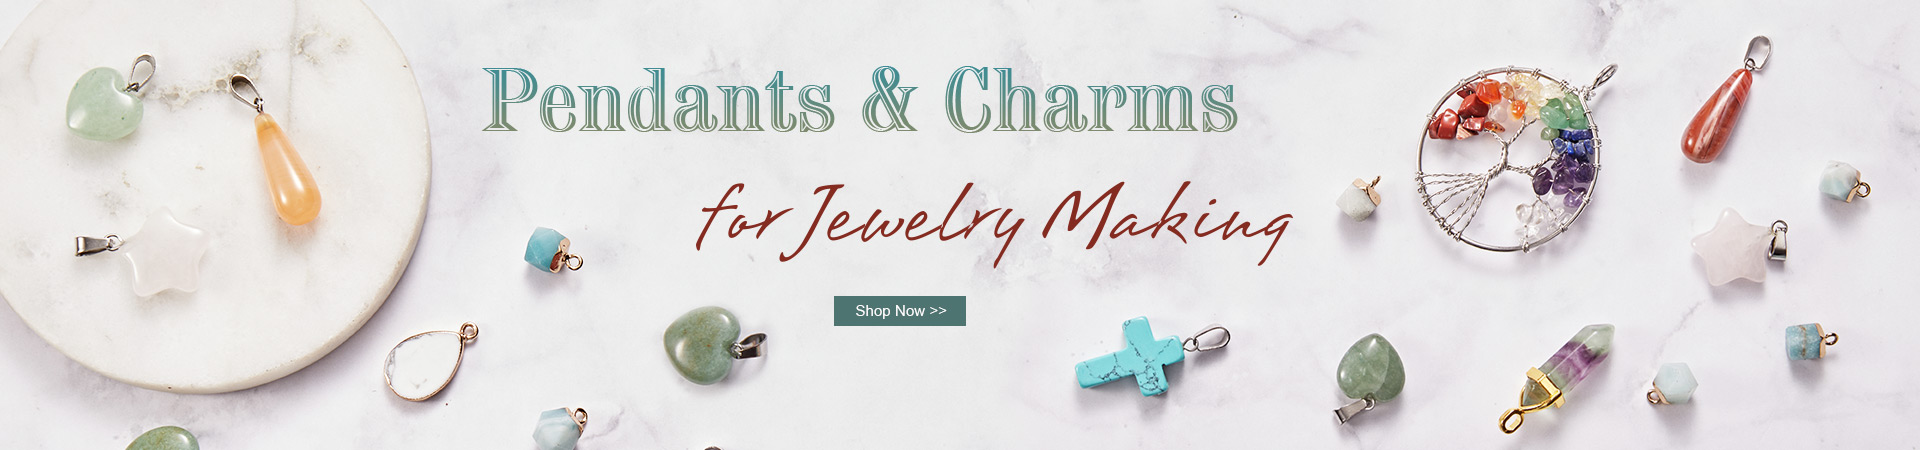 Pendants & Charms for Jewelry Making